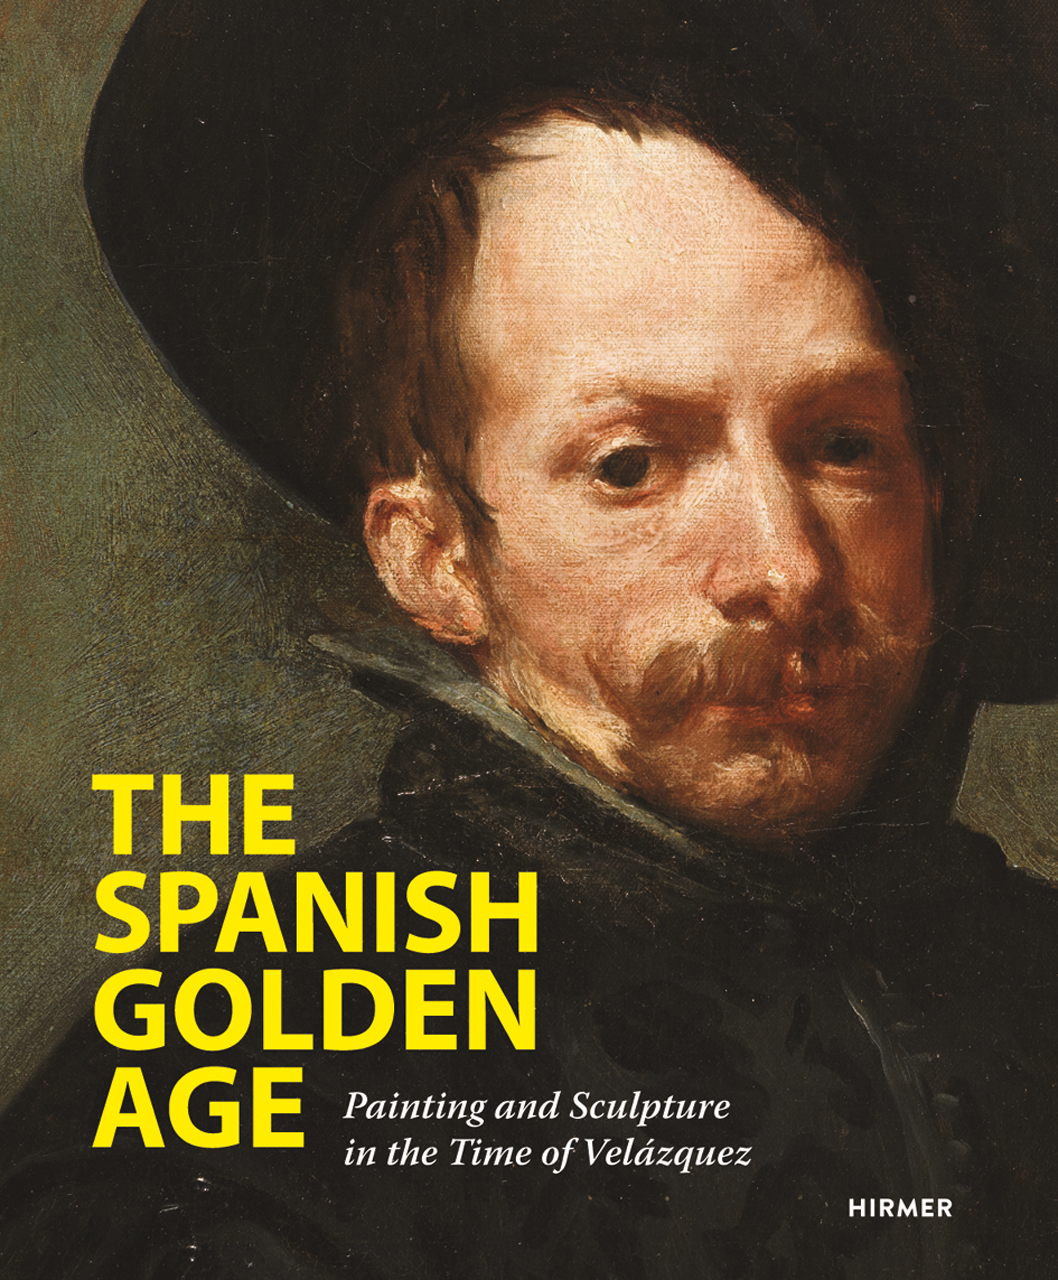 The Spanish Golden Age